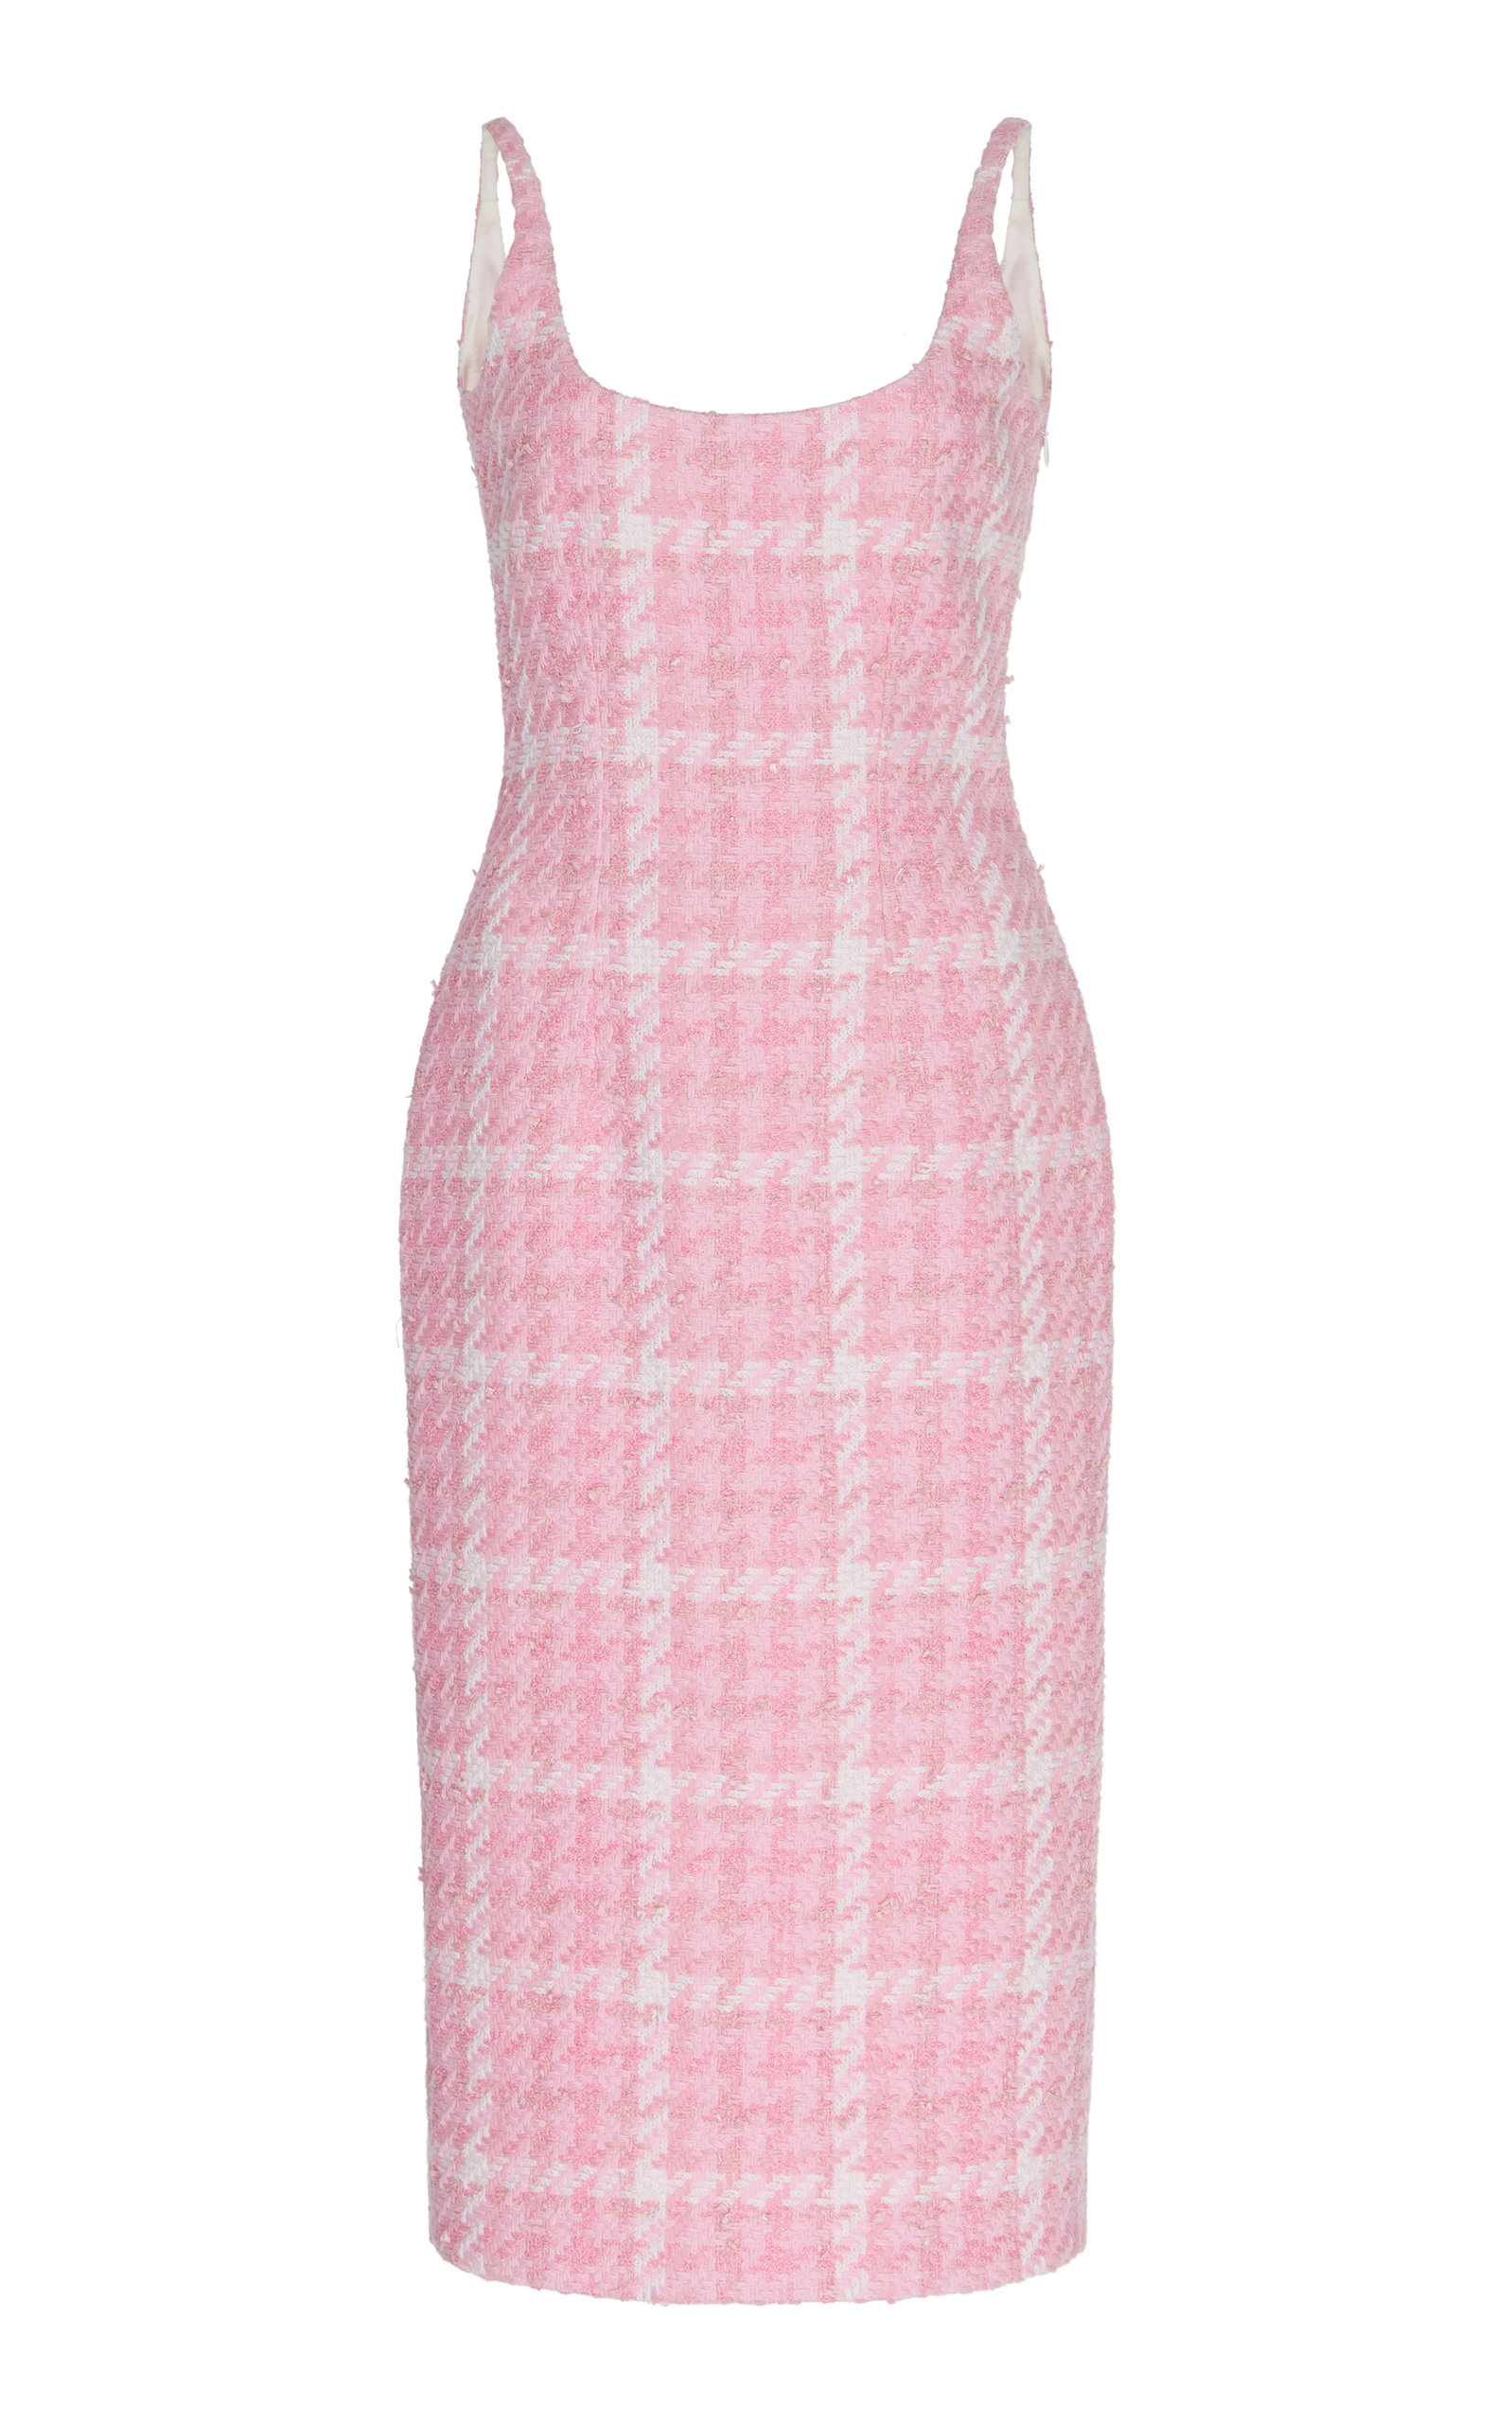 Buy Alessandra Rich Houndstooth Tweed Midi Dress online, shop Alessandra Rich at the best price